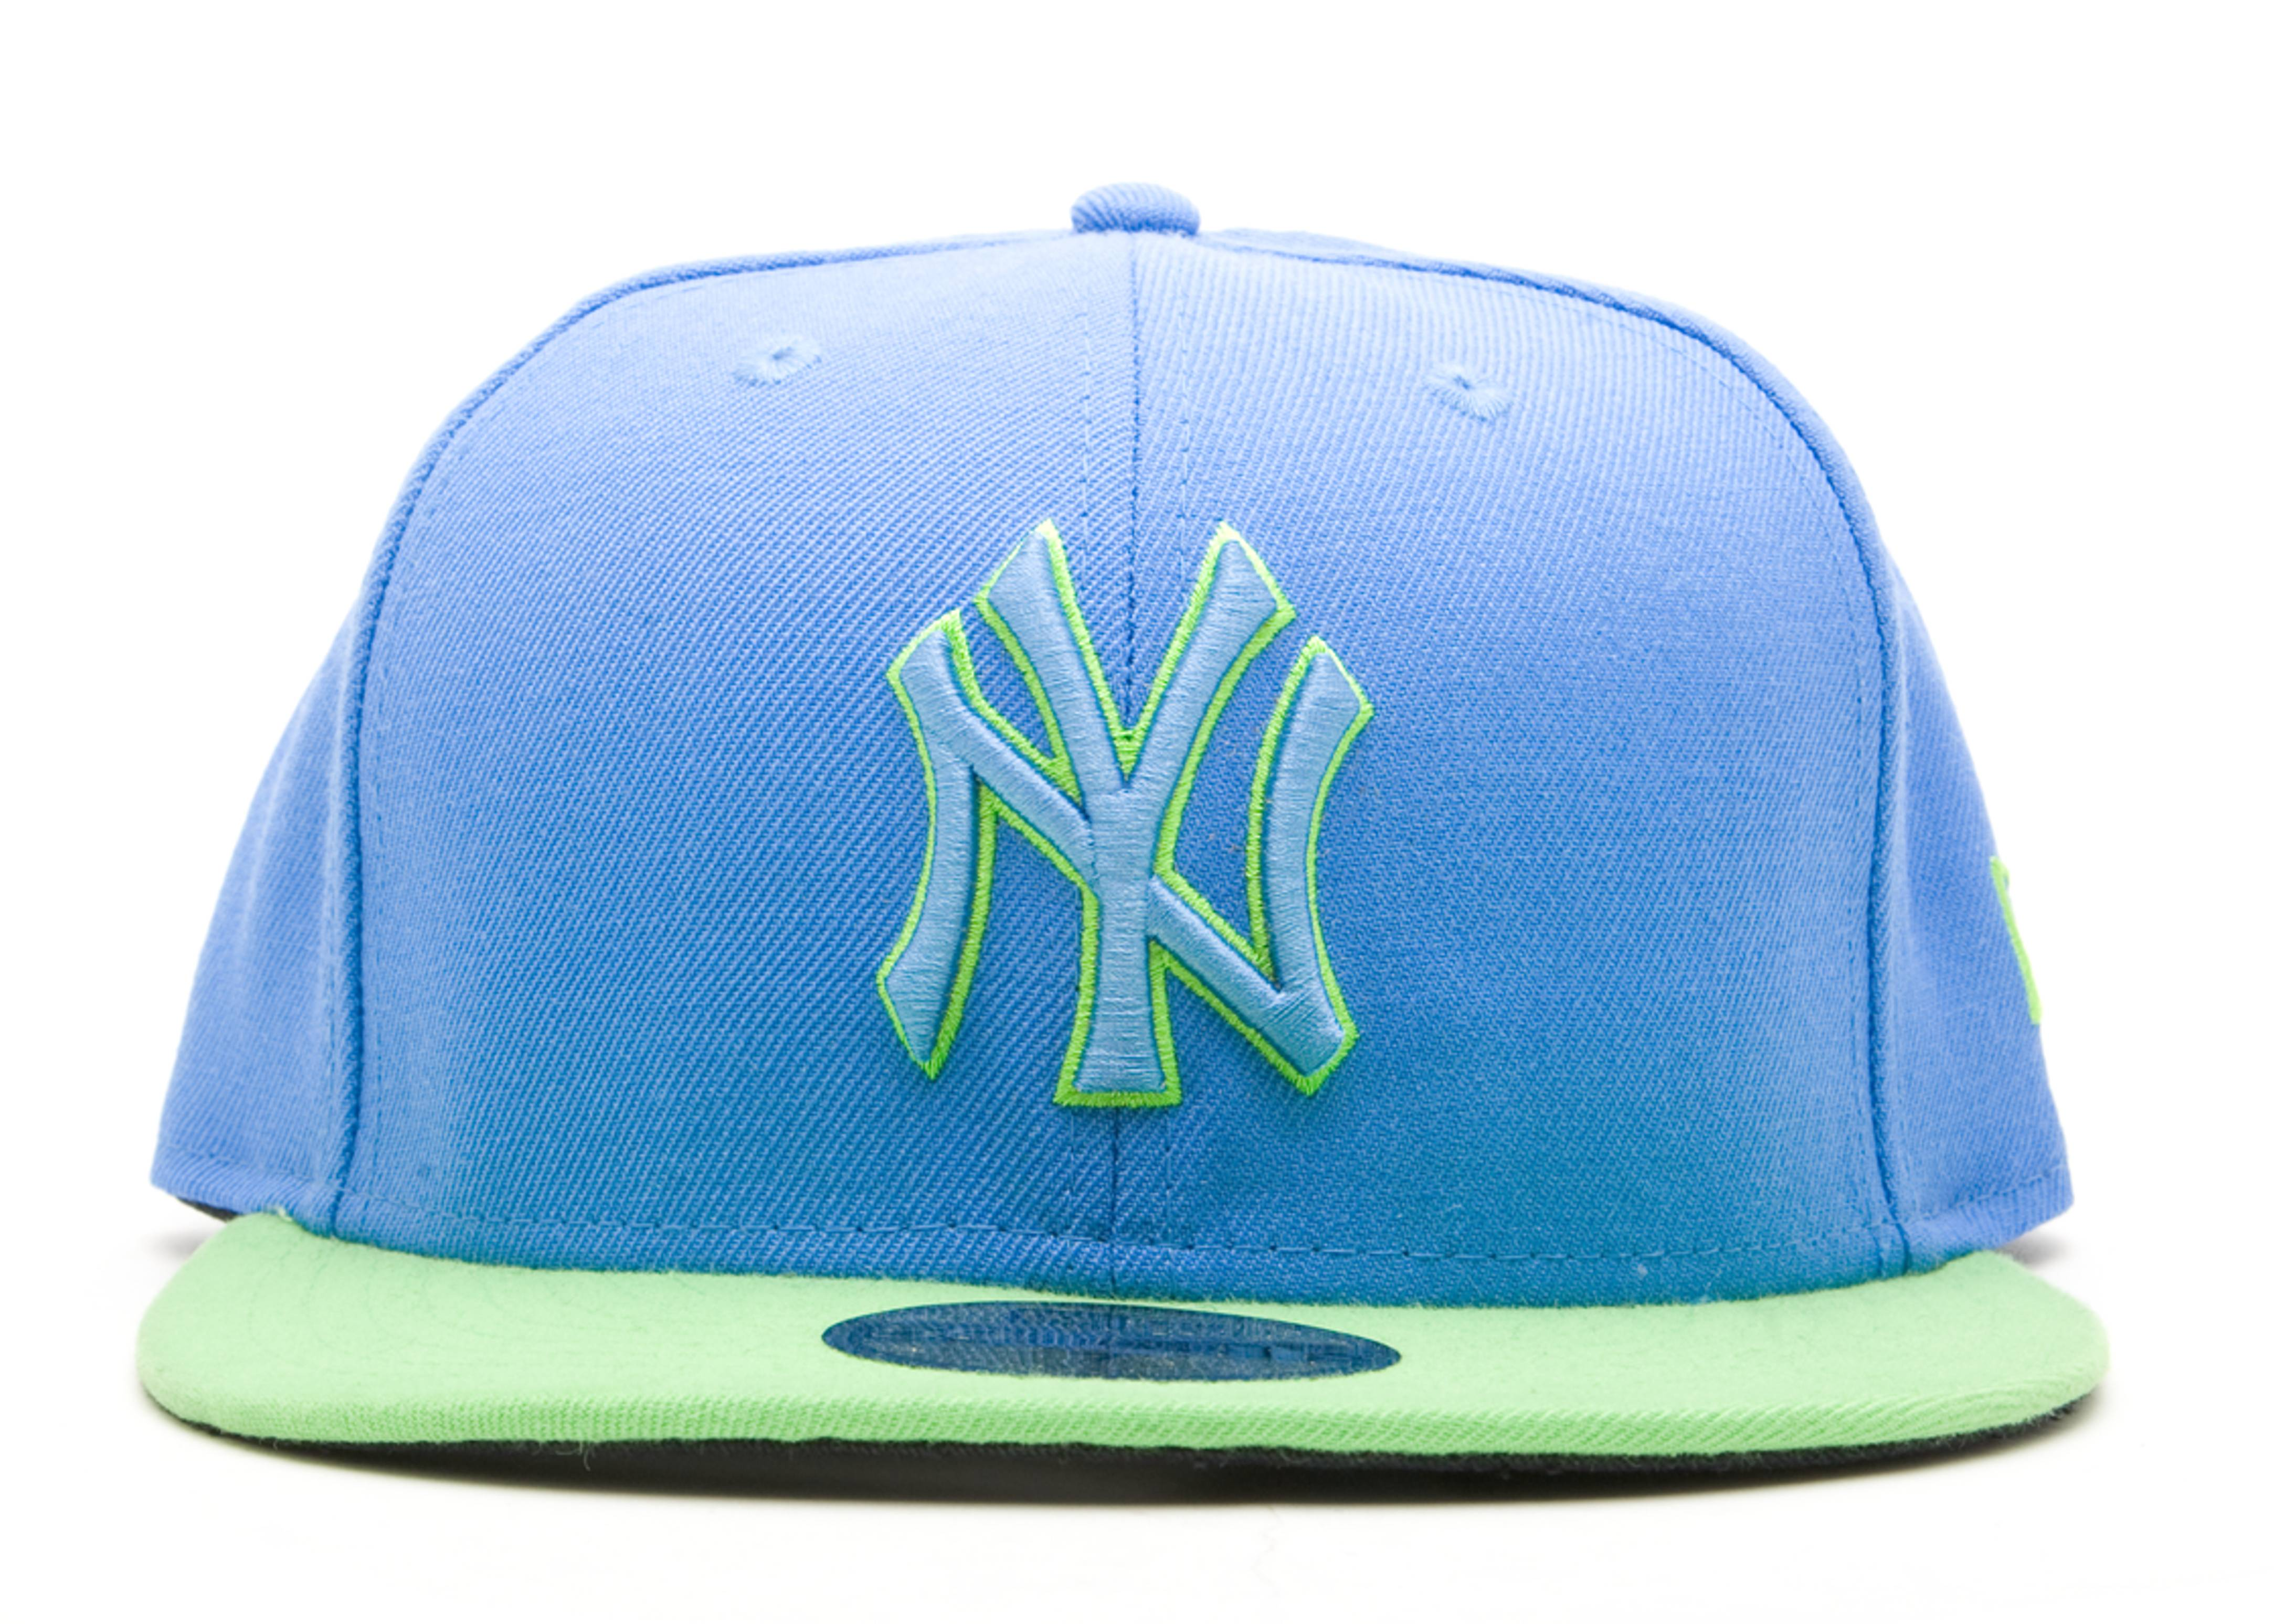 7cbce7fa129 New York Yankees Fitted - New Era - 10179373 - air force blue lime ...